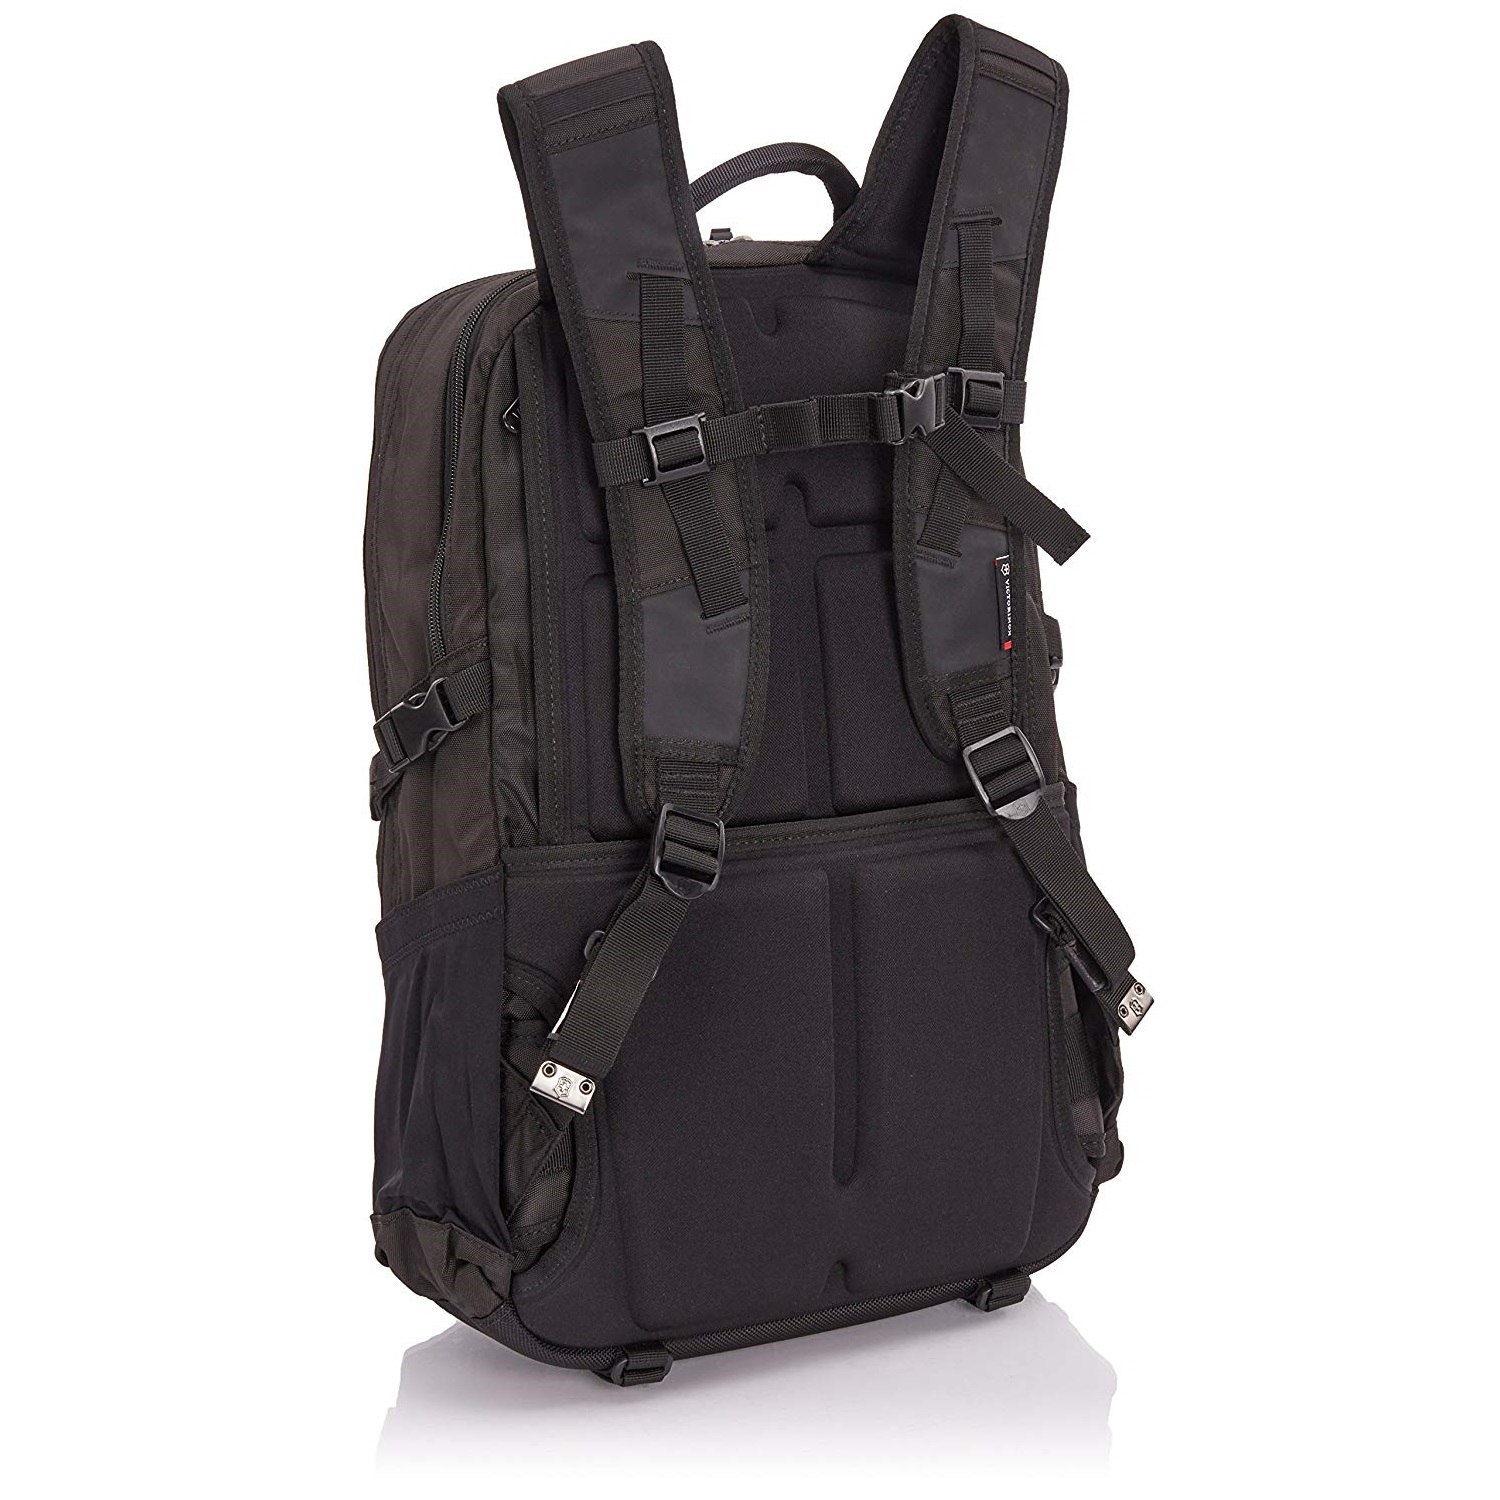 The Victorinox Backpack offers adjustable sternum straps for security.